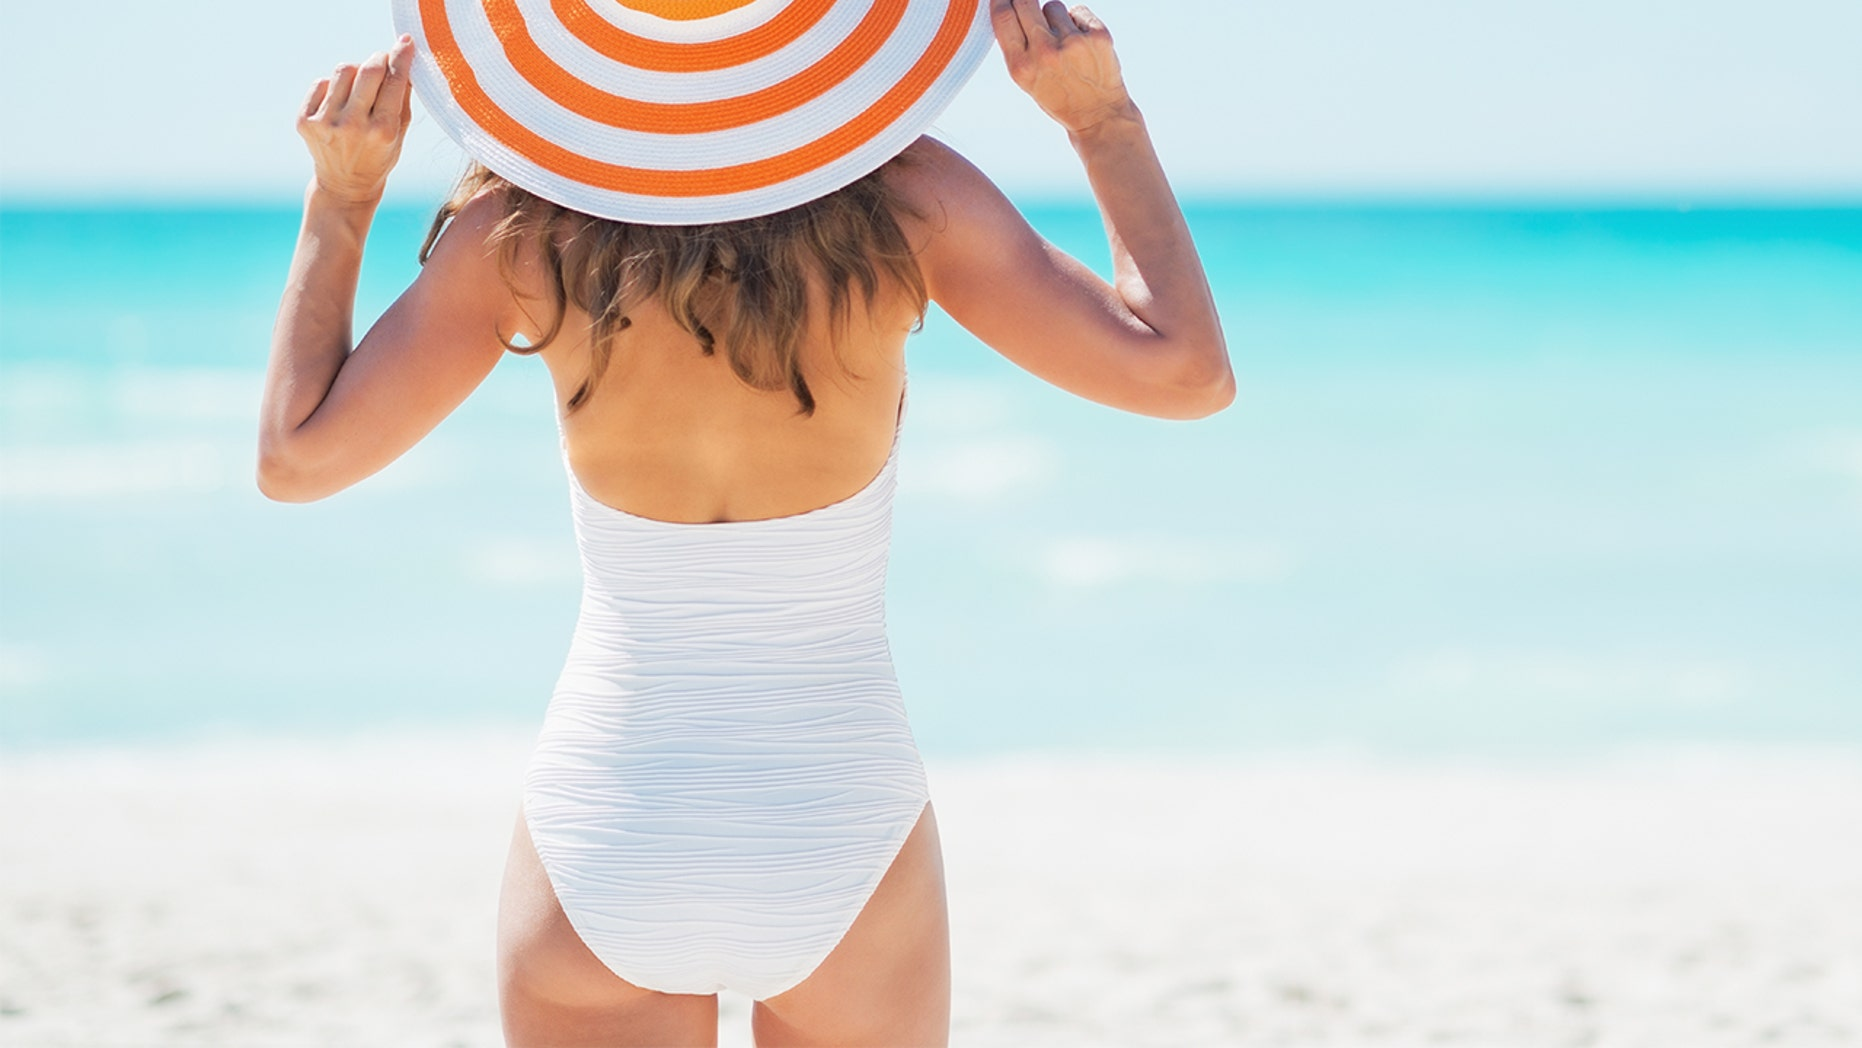 Beloved Prints is now selling a one-piece swimsuit featuring a picture of President Trump's face